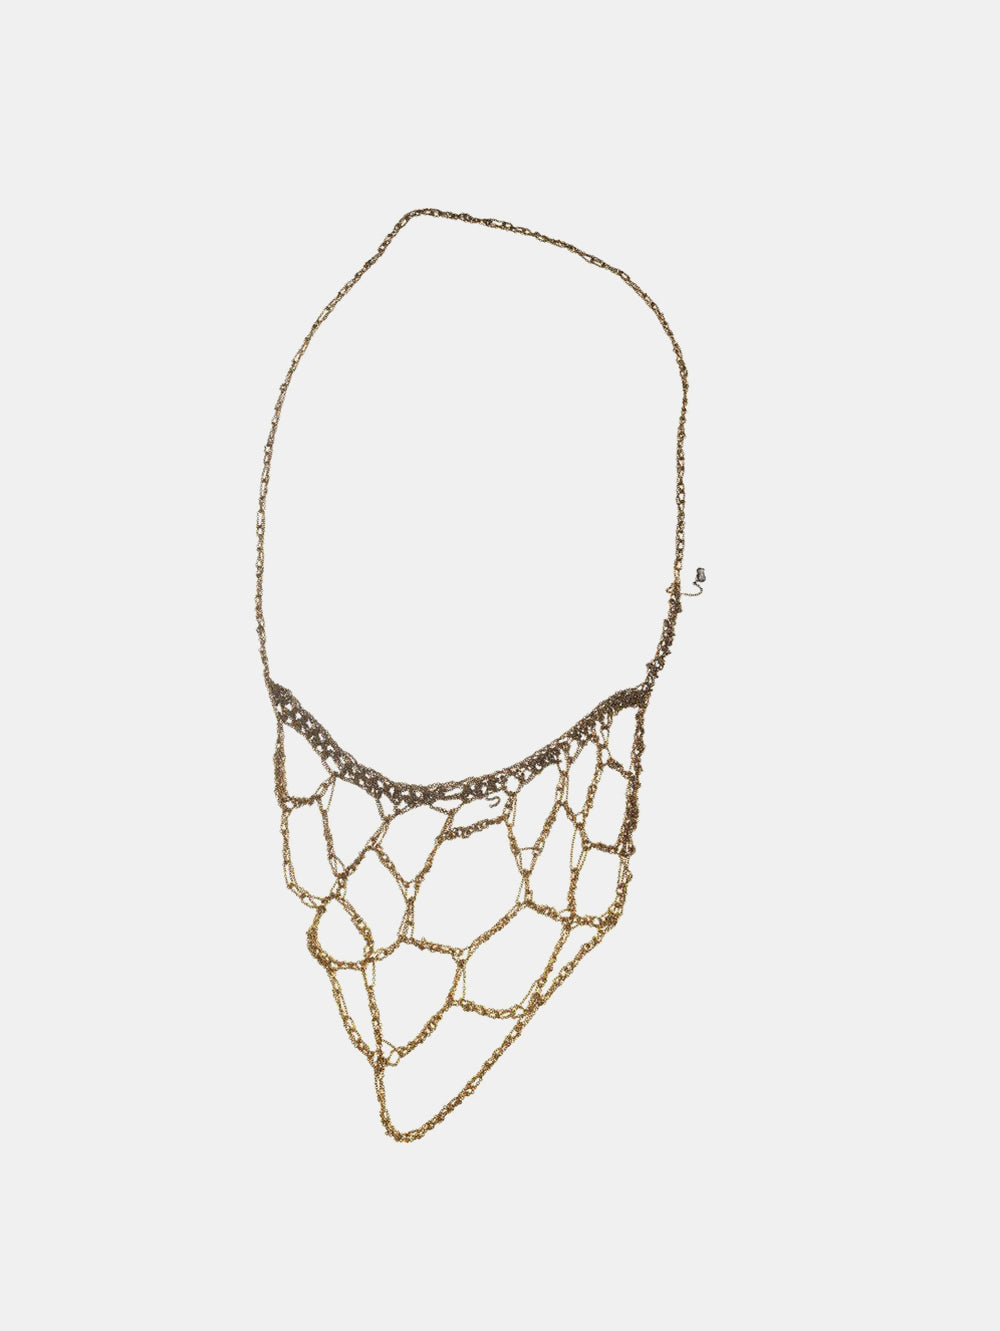 arielle de pinto web necklace in gold gradient